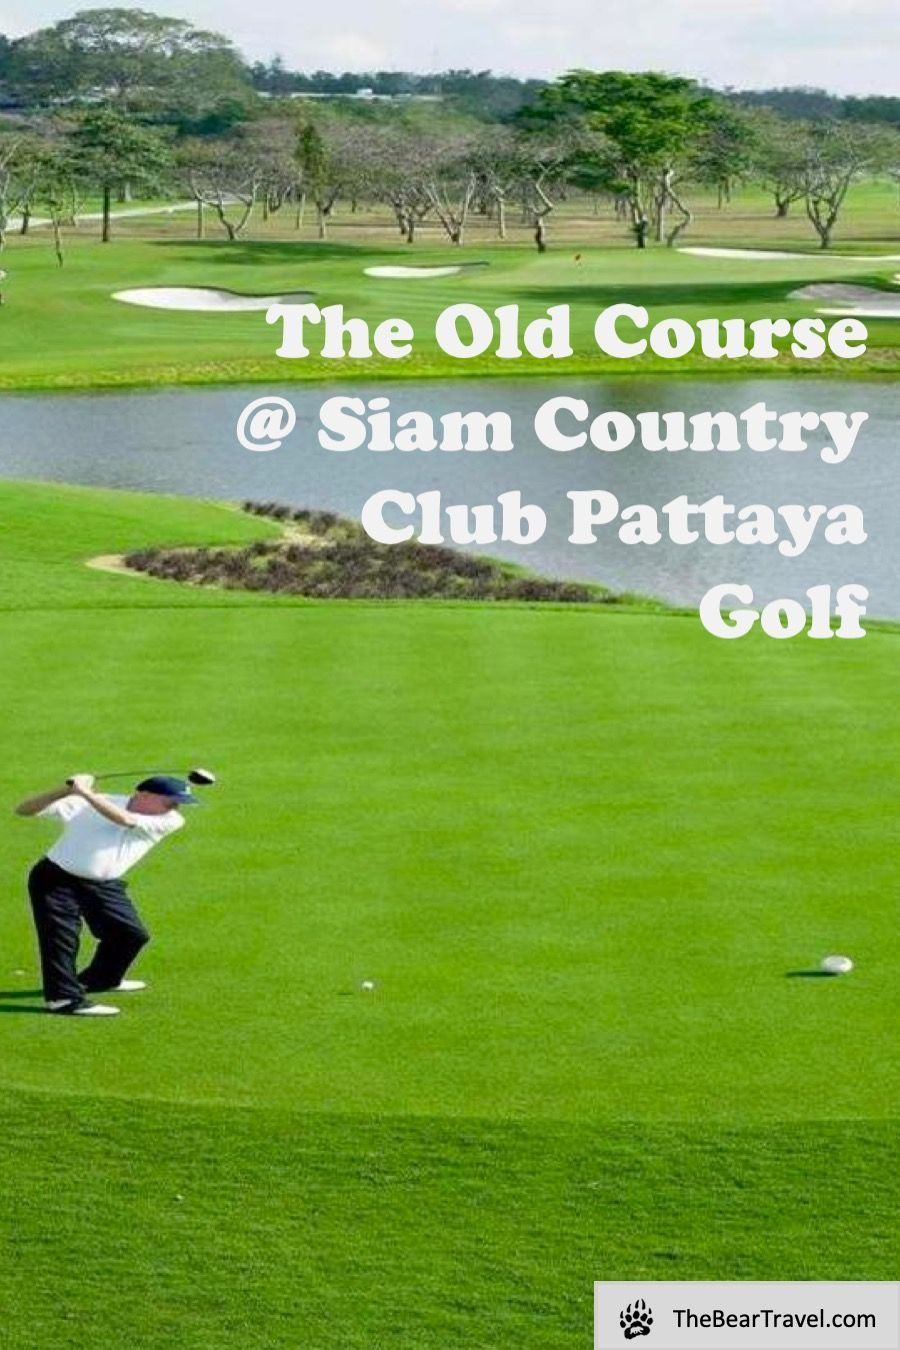 The Old Course Siam Country Club Pattaya Golf Thebeartravel Com In 2020 Pattaya Top Destinations In Thailand Siam